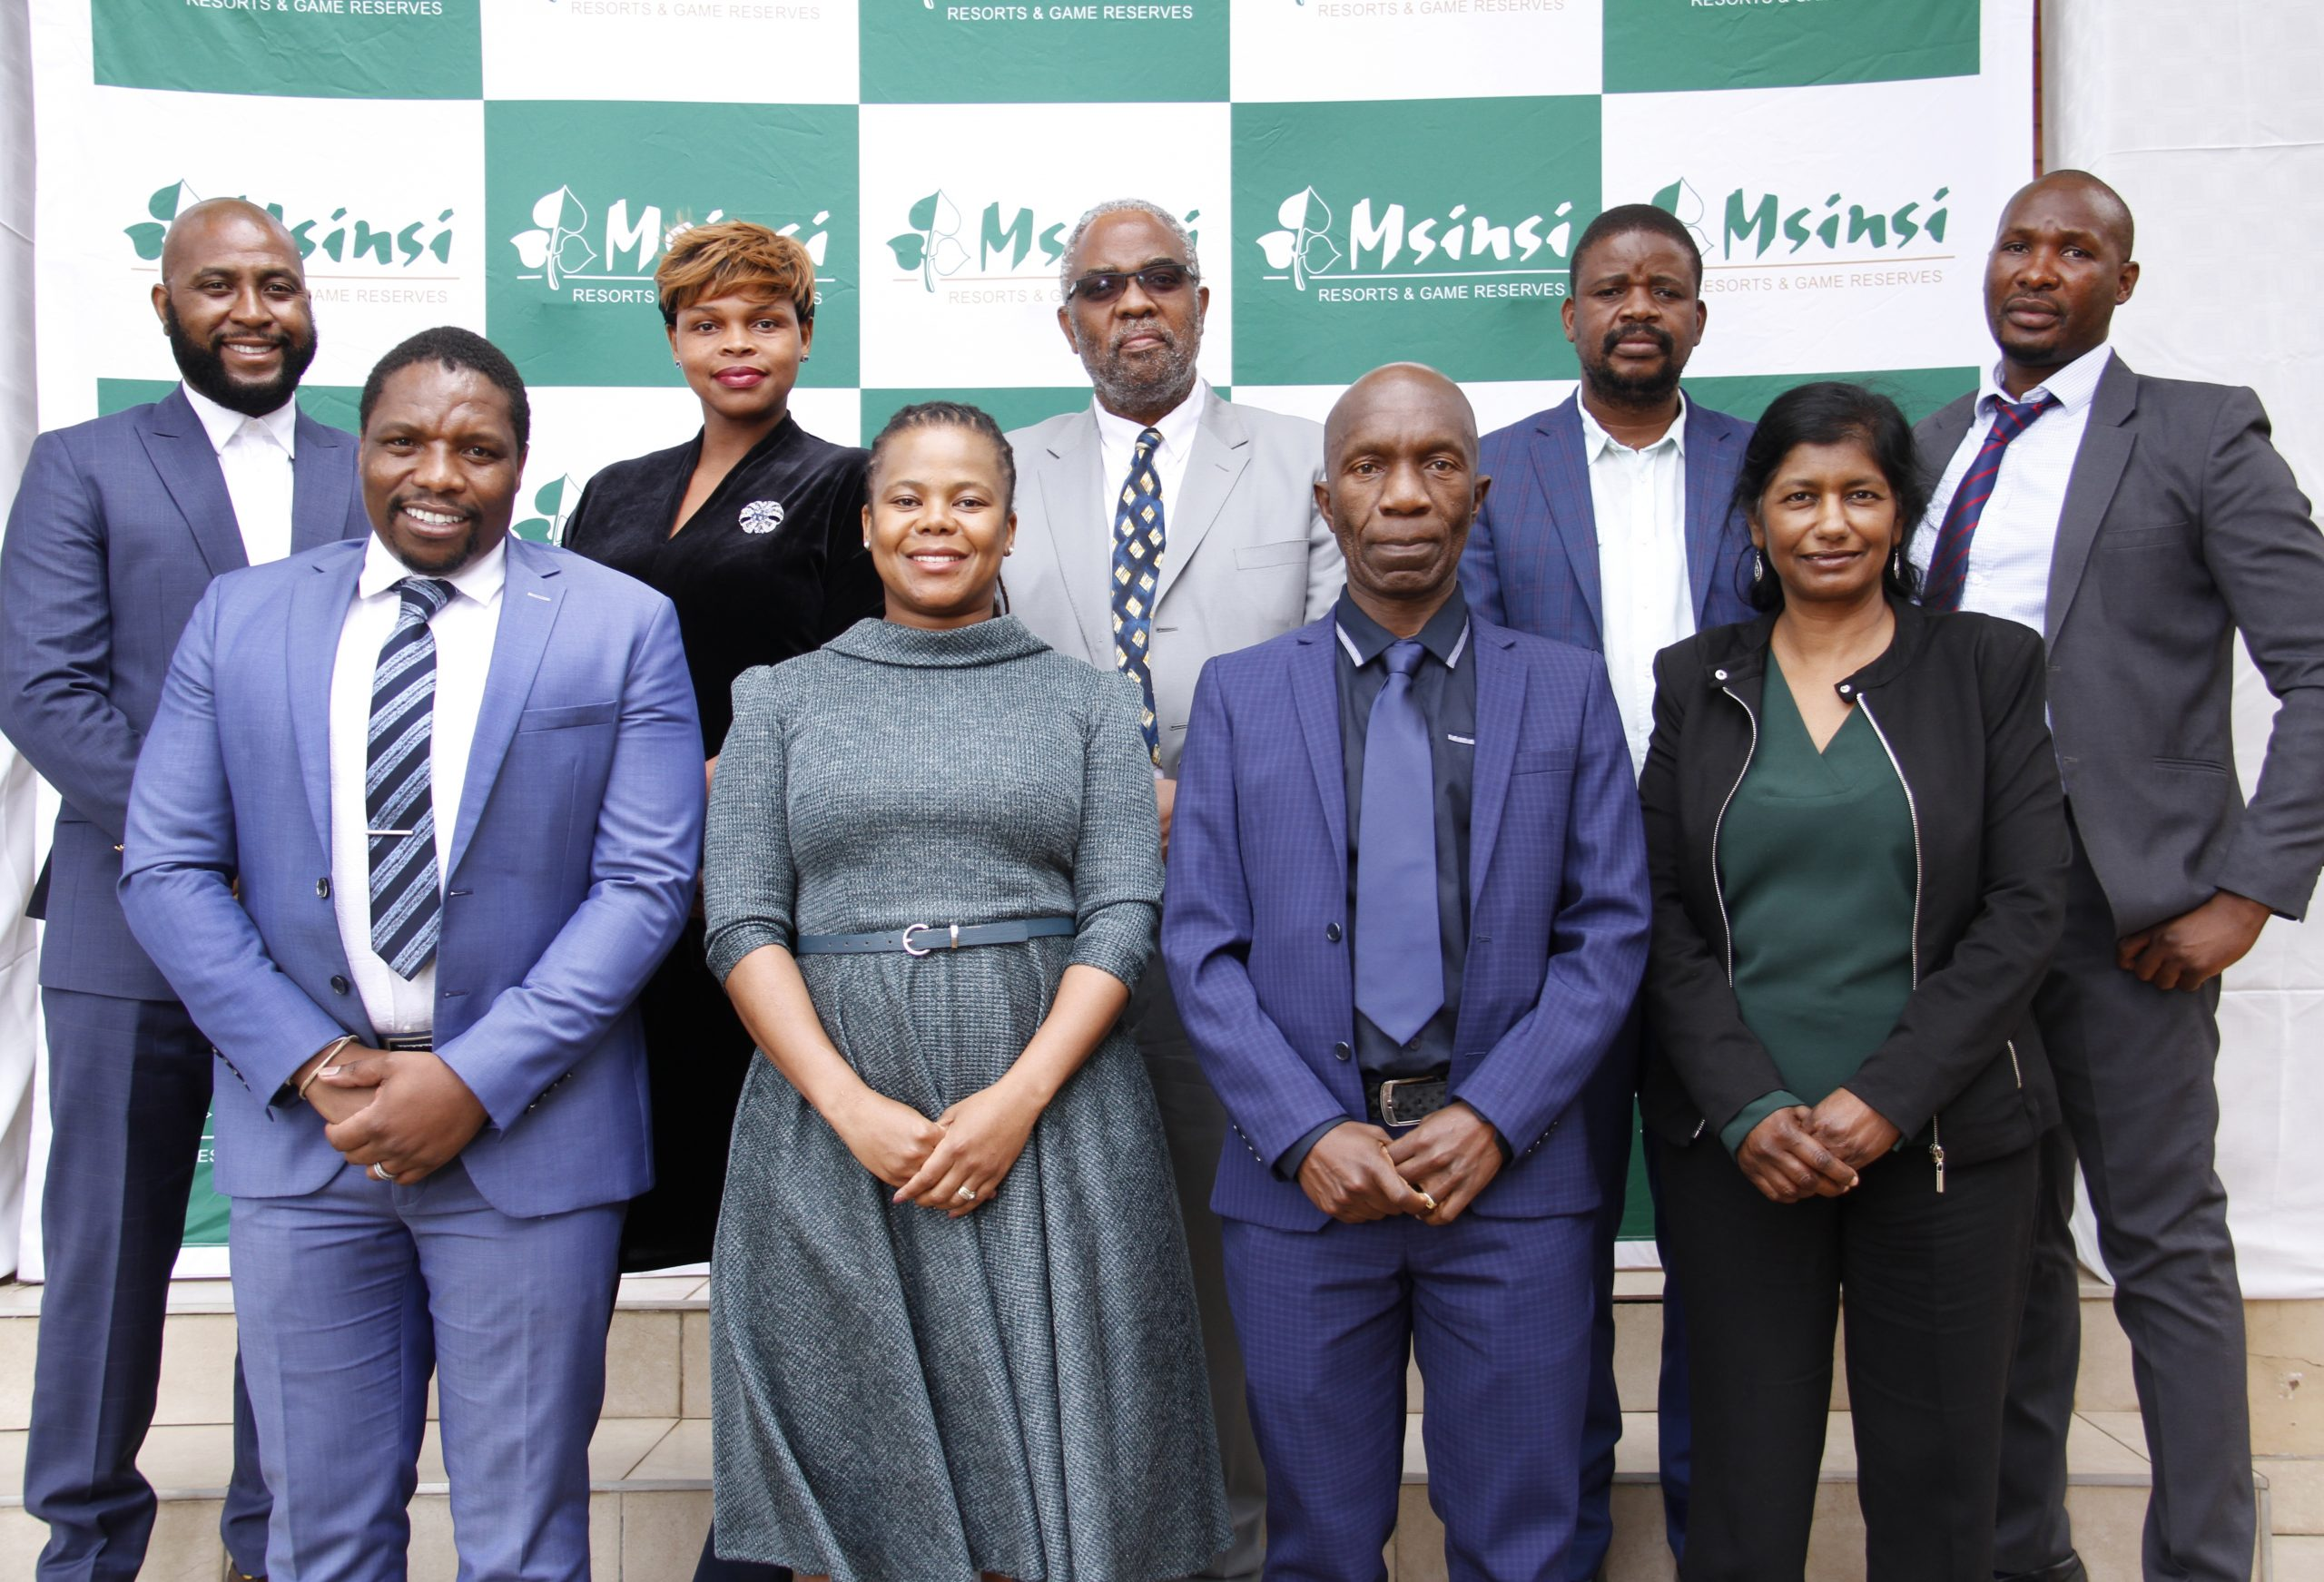 msinsi's new board members